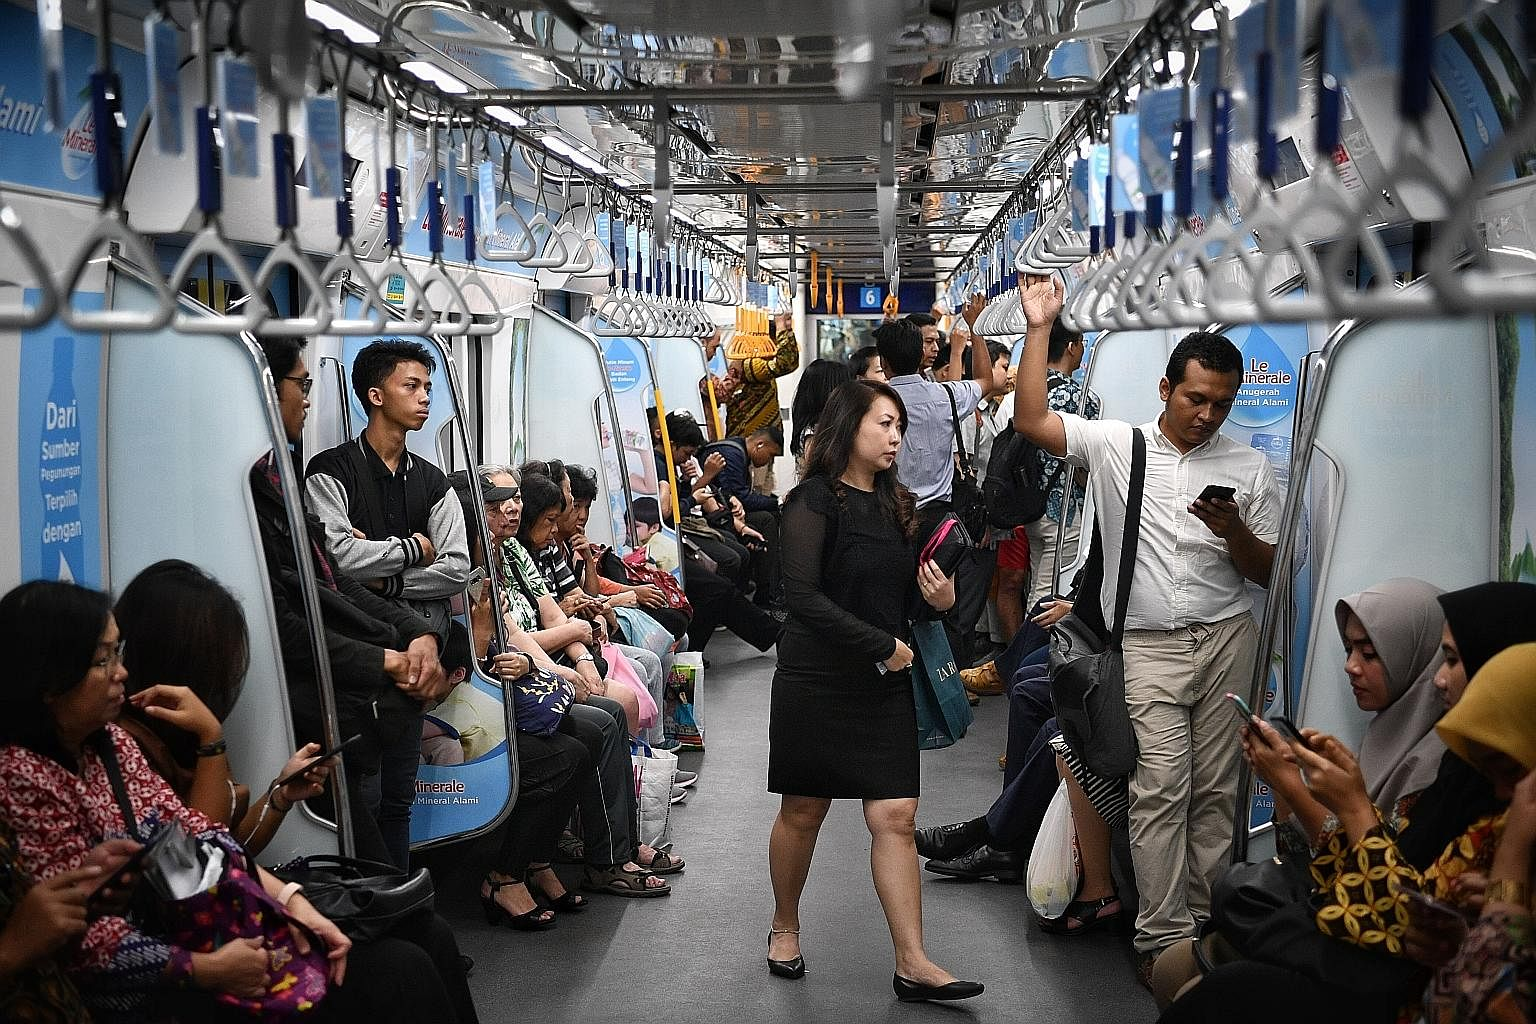 Commuters on a Jakarta subway train yesterday. The MRT has been highly politicised, with President Joko Widodo lauded for his role in pushing the project through while he was Jakarta governor from 2012 to 2014. But his detractors say credit should go